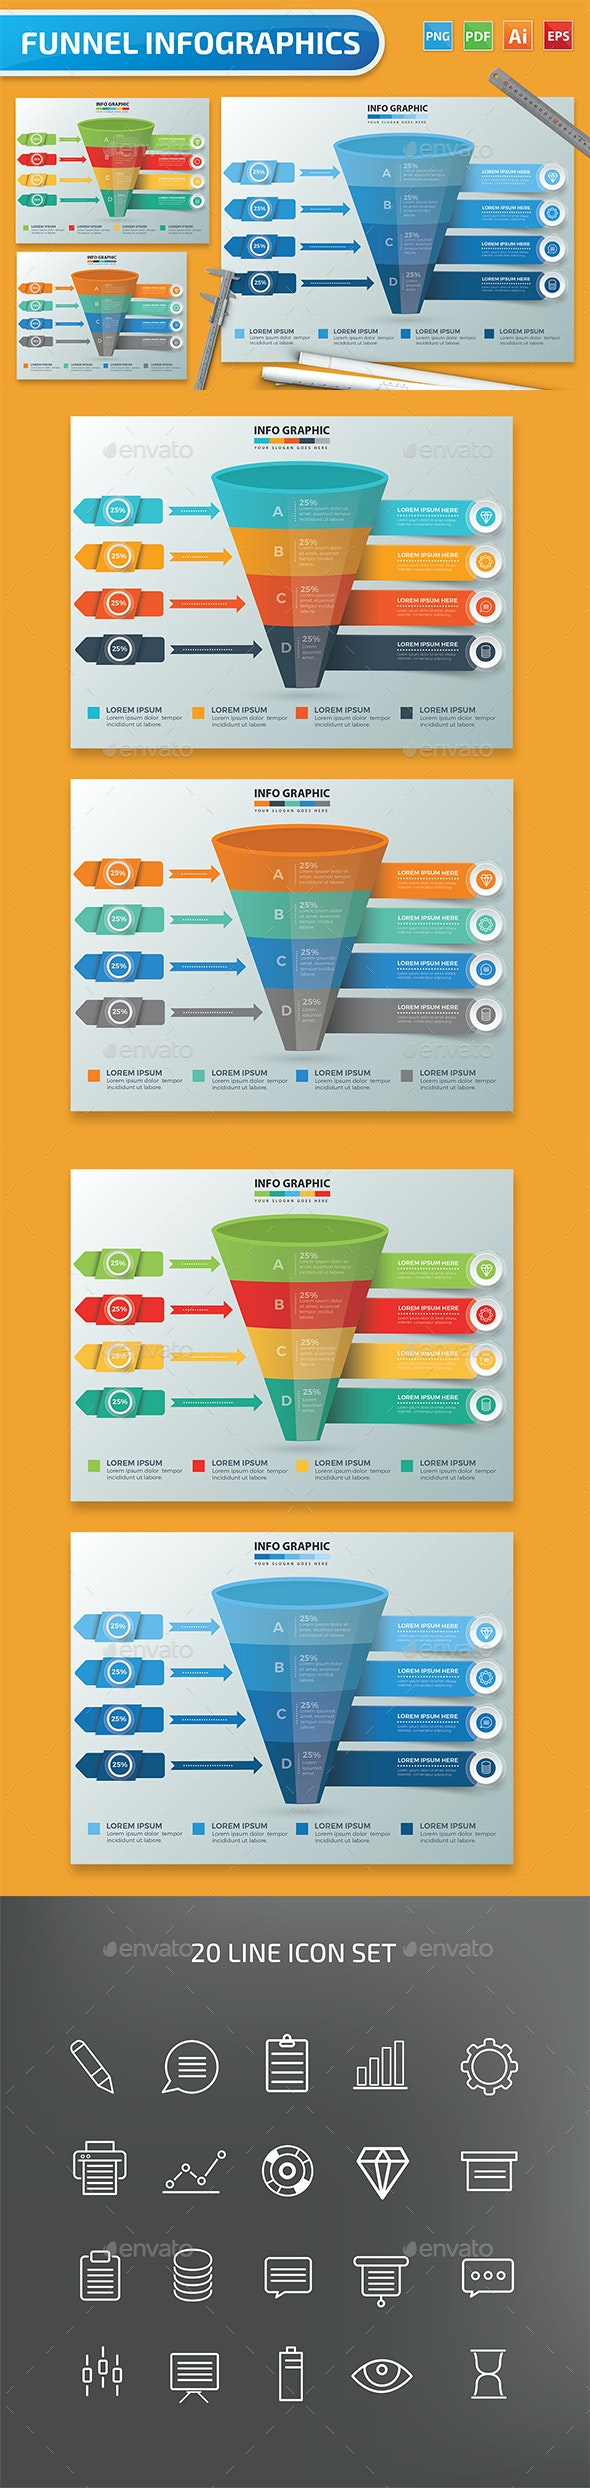 Funnel Infographic Design - Infographics